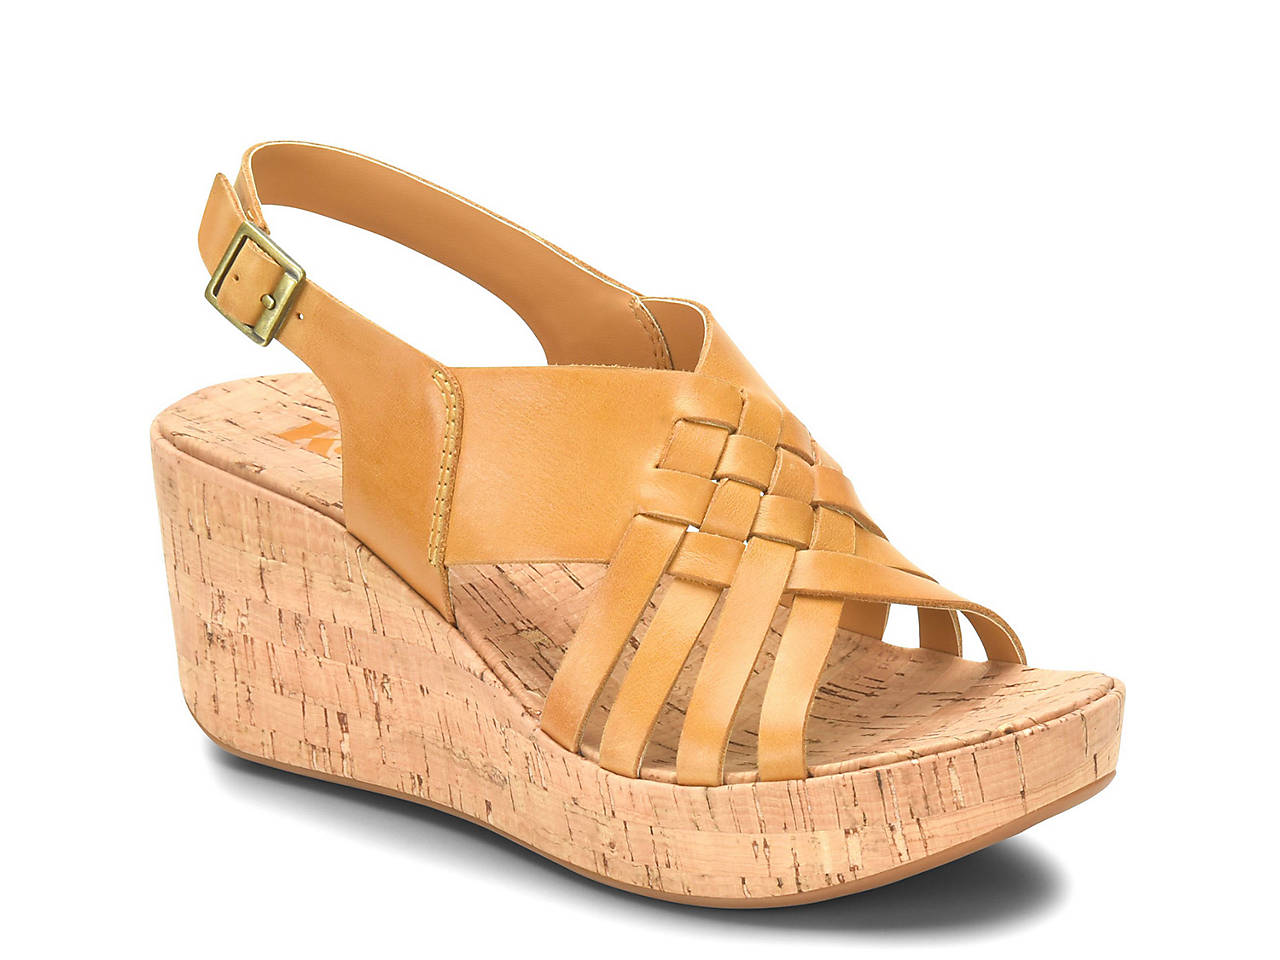 db31eb9267 Korks Anguilla Wedge Sandal Women's Shoes | DSW